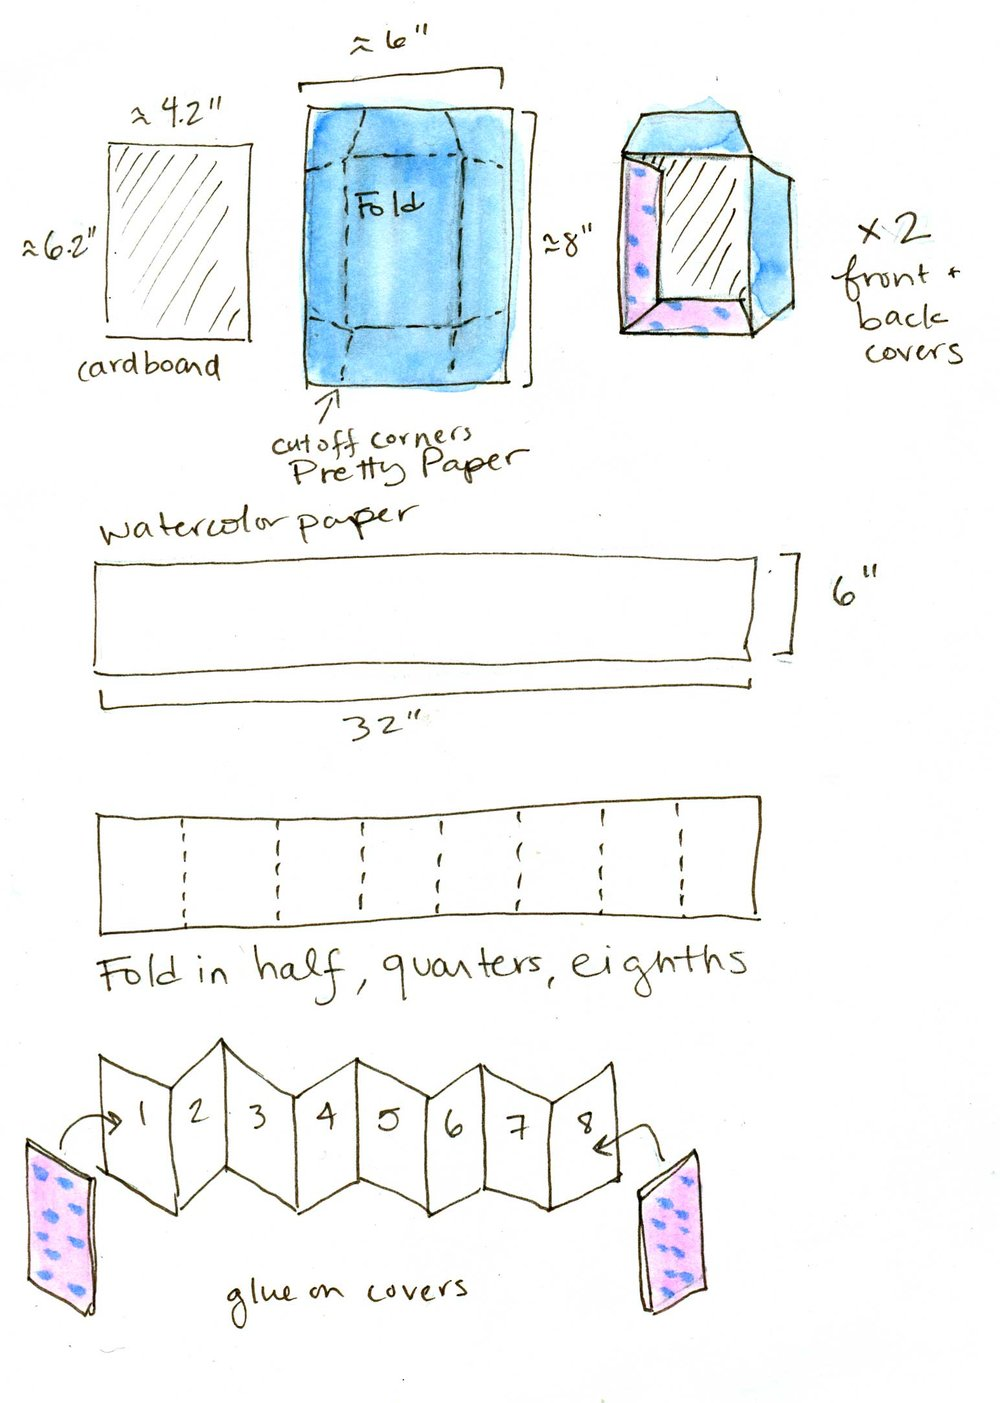 How to make your own accordion book. One reason to use this type of book is that they don't require many supplies to make.